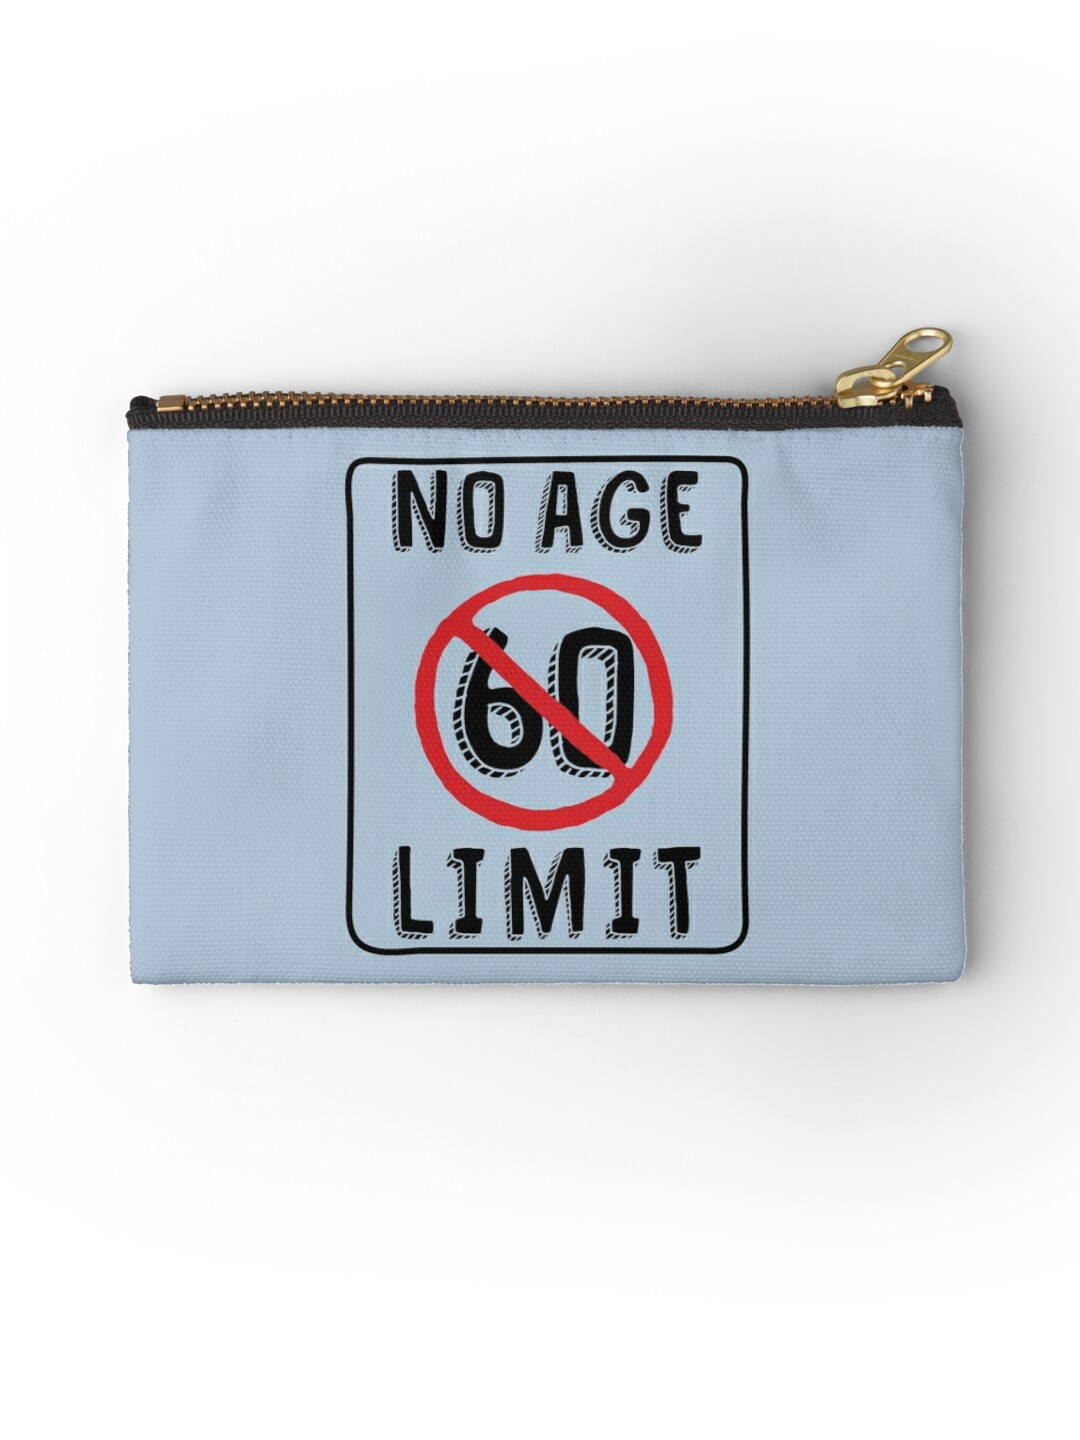 No Age Limit 60th Birthday T-shirt, Phone Cases And Other Gifts